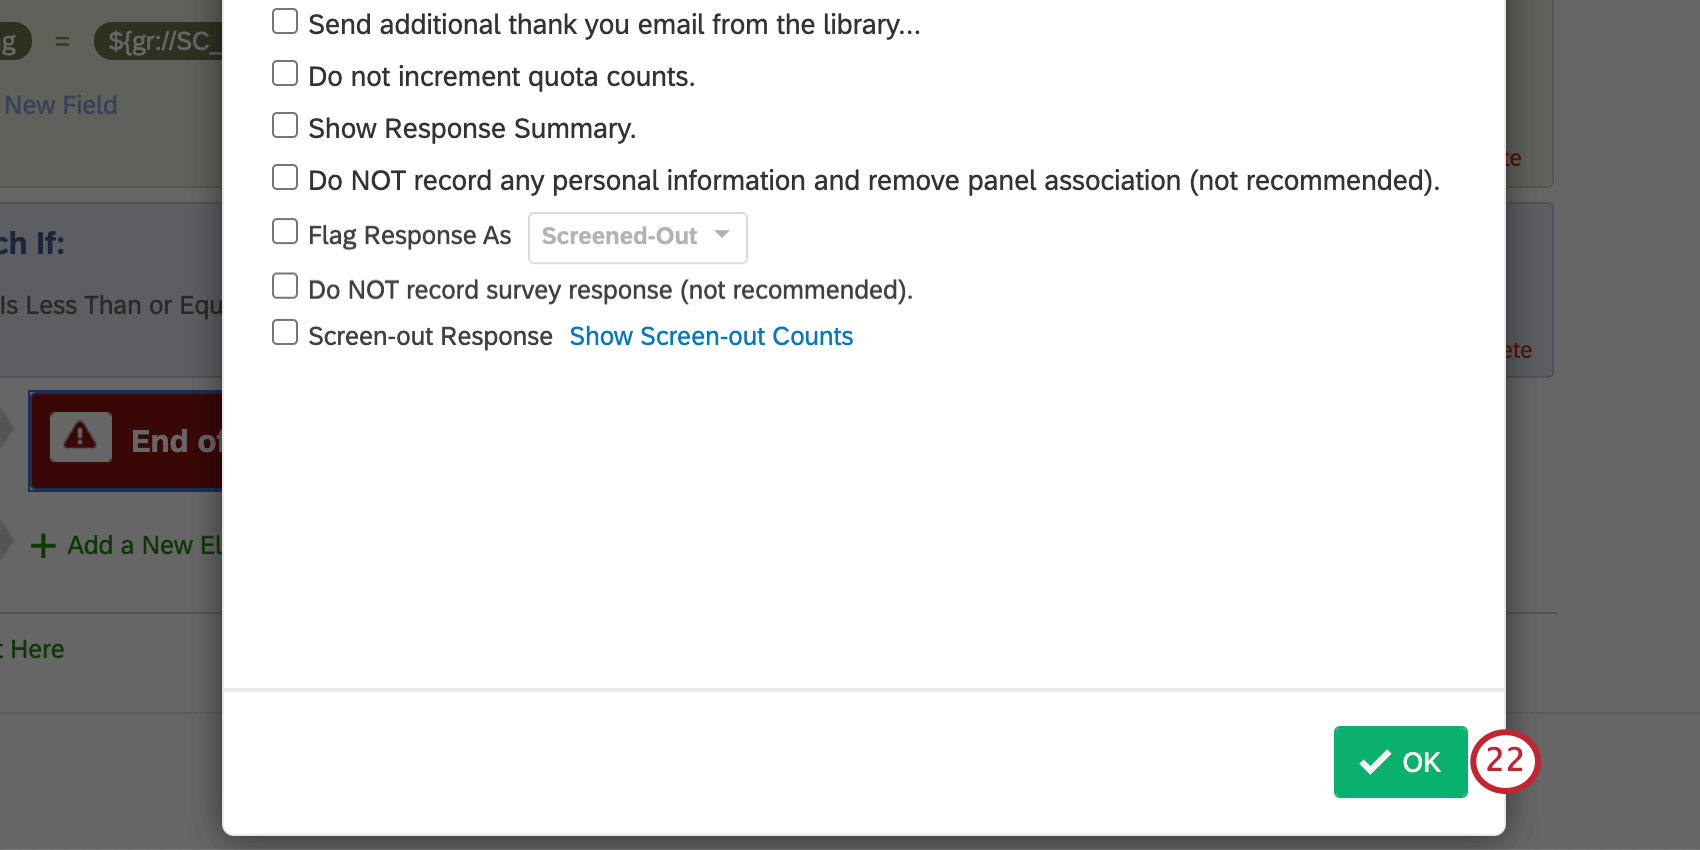 Saving end of survey customization by clicking green OK in lower-right